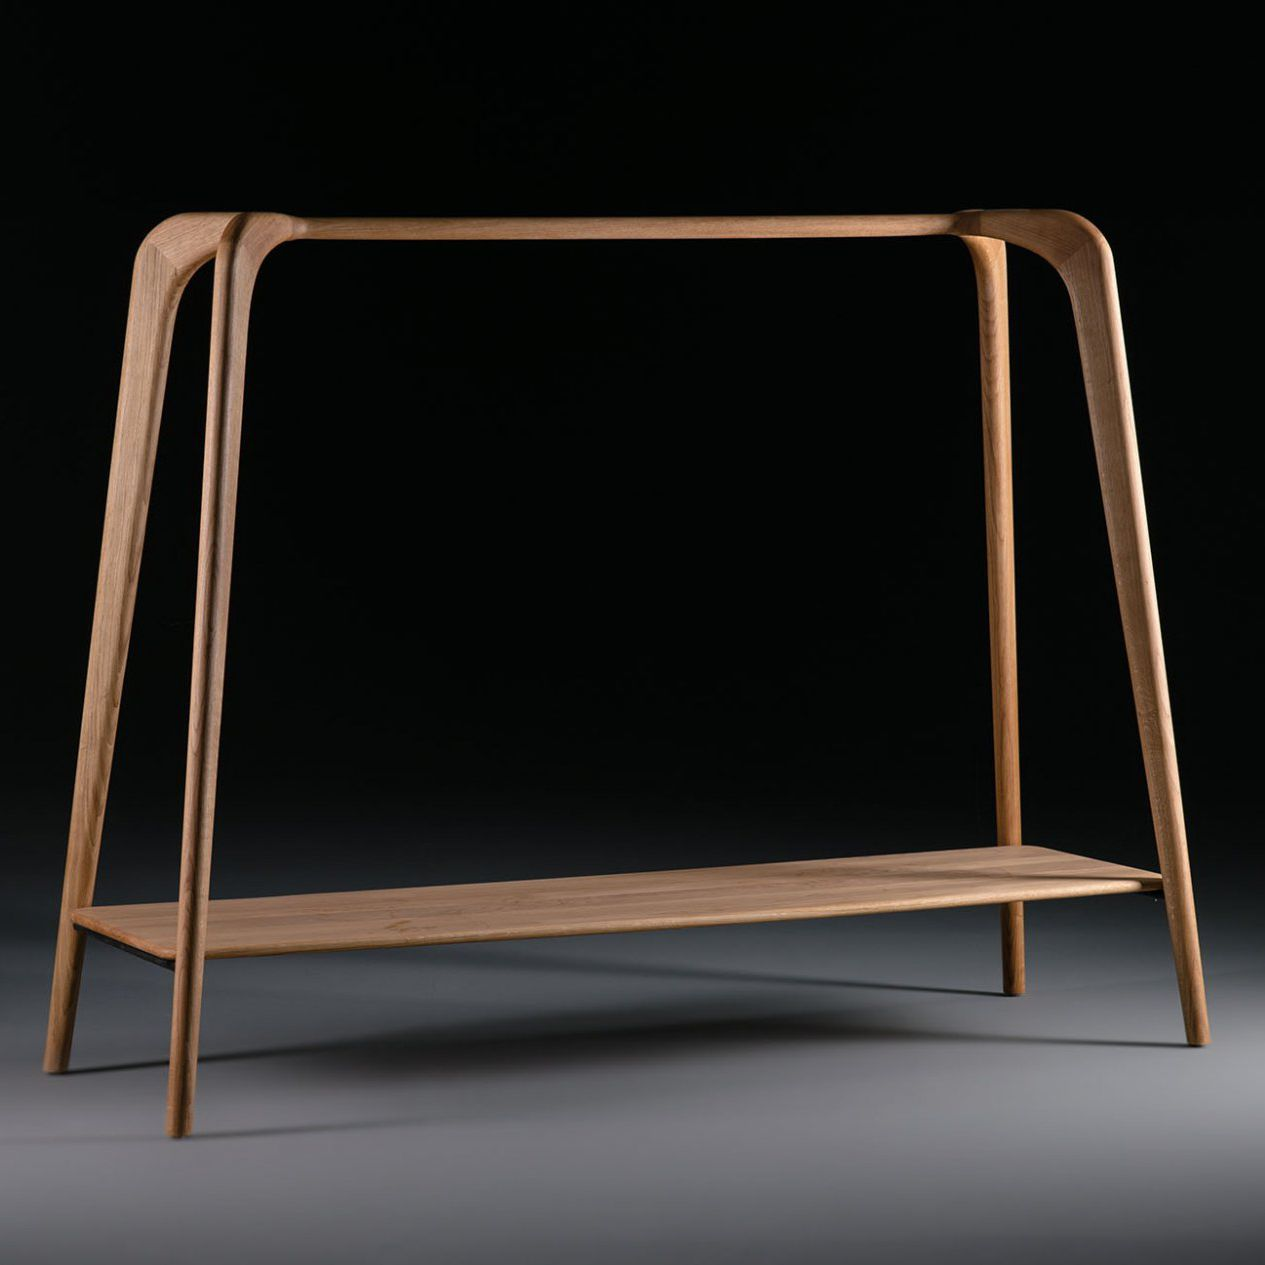 Artisan Solid Wood Furniture Moderne Garderobenstange   Holz   SWING by  Edvar design. Moderne Garderobenstange   Holz   SWING by Edvar design   Artisan